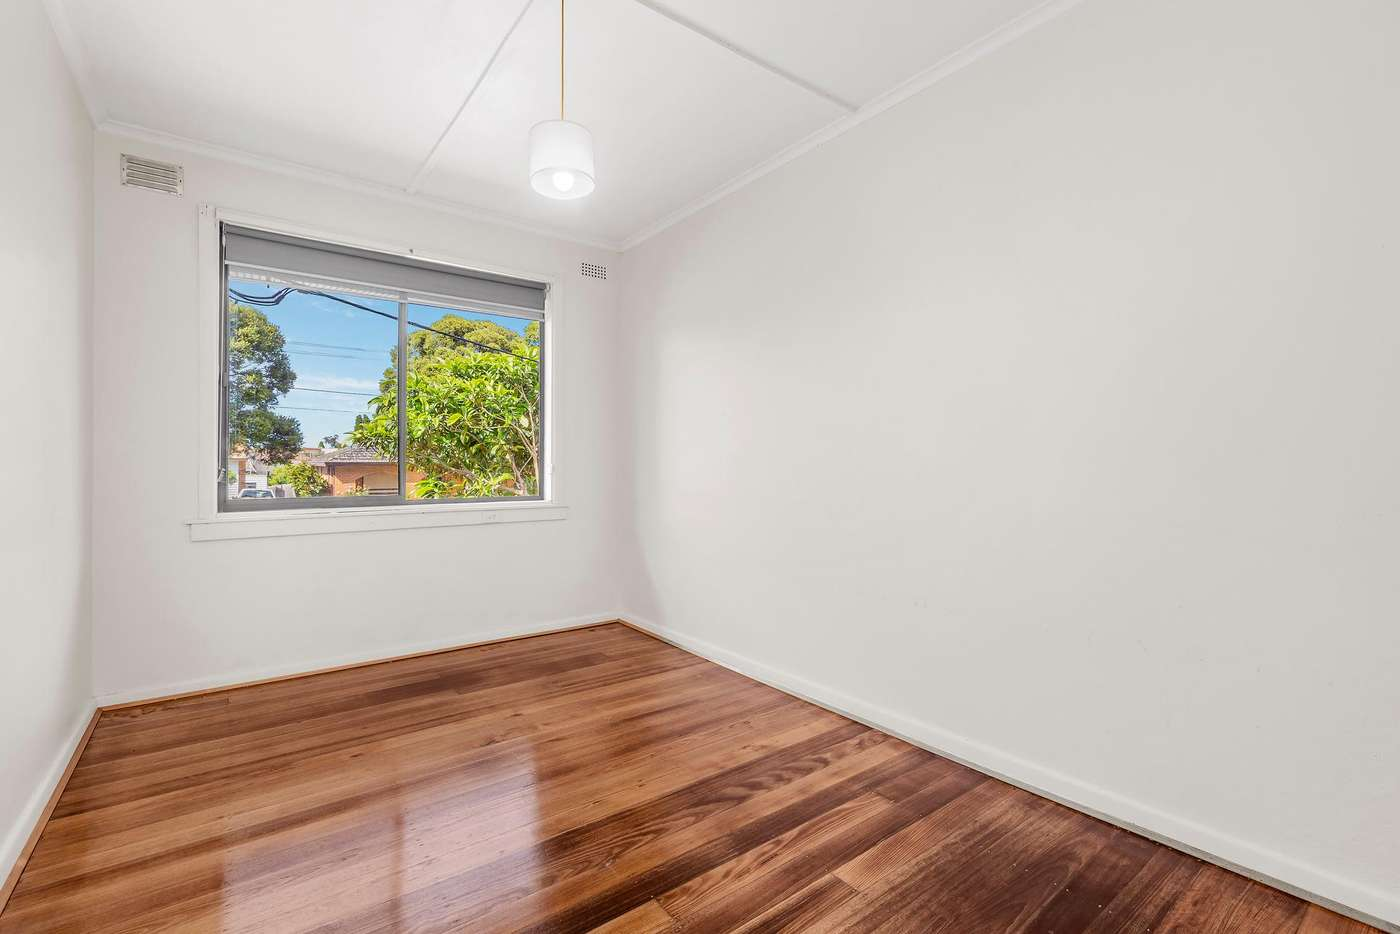 Seventh view of Homely house listing, 38 Symons Street, Preston VIC 3072